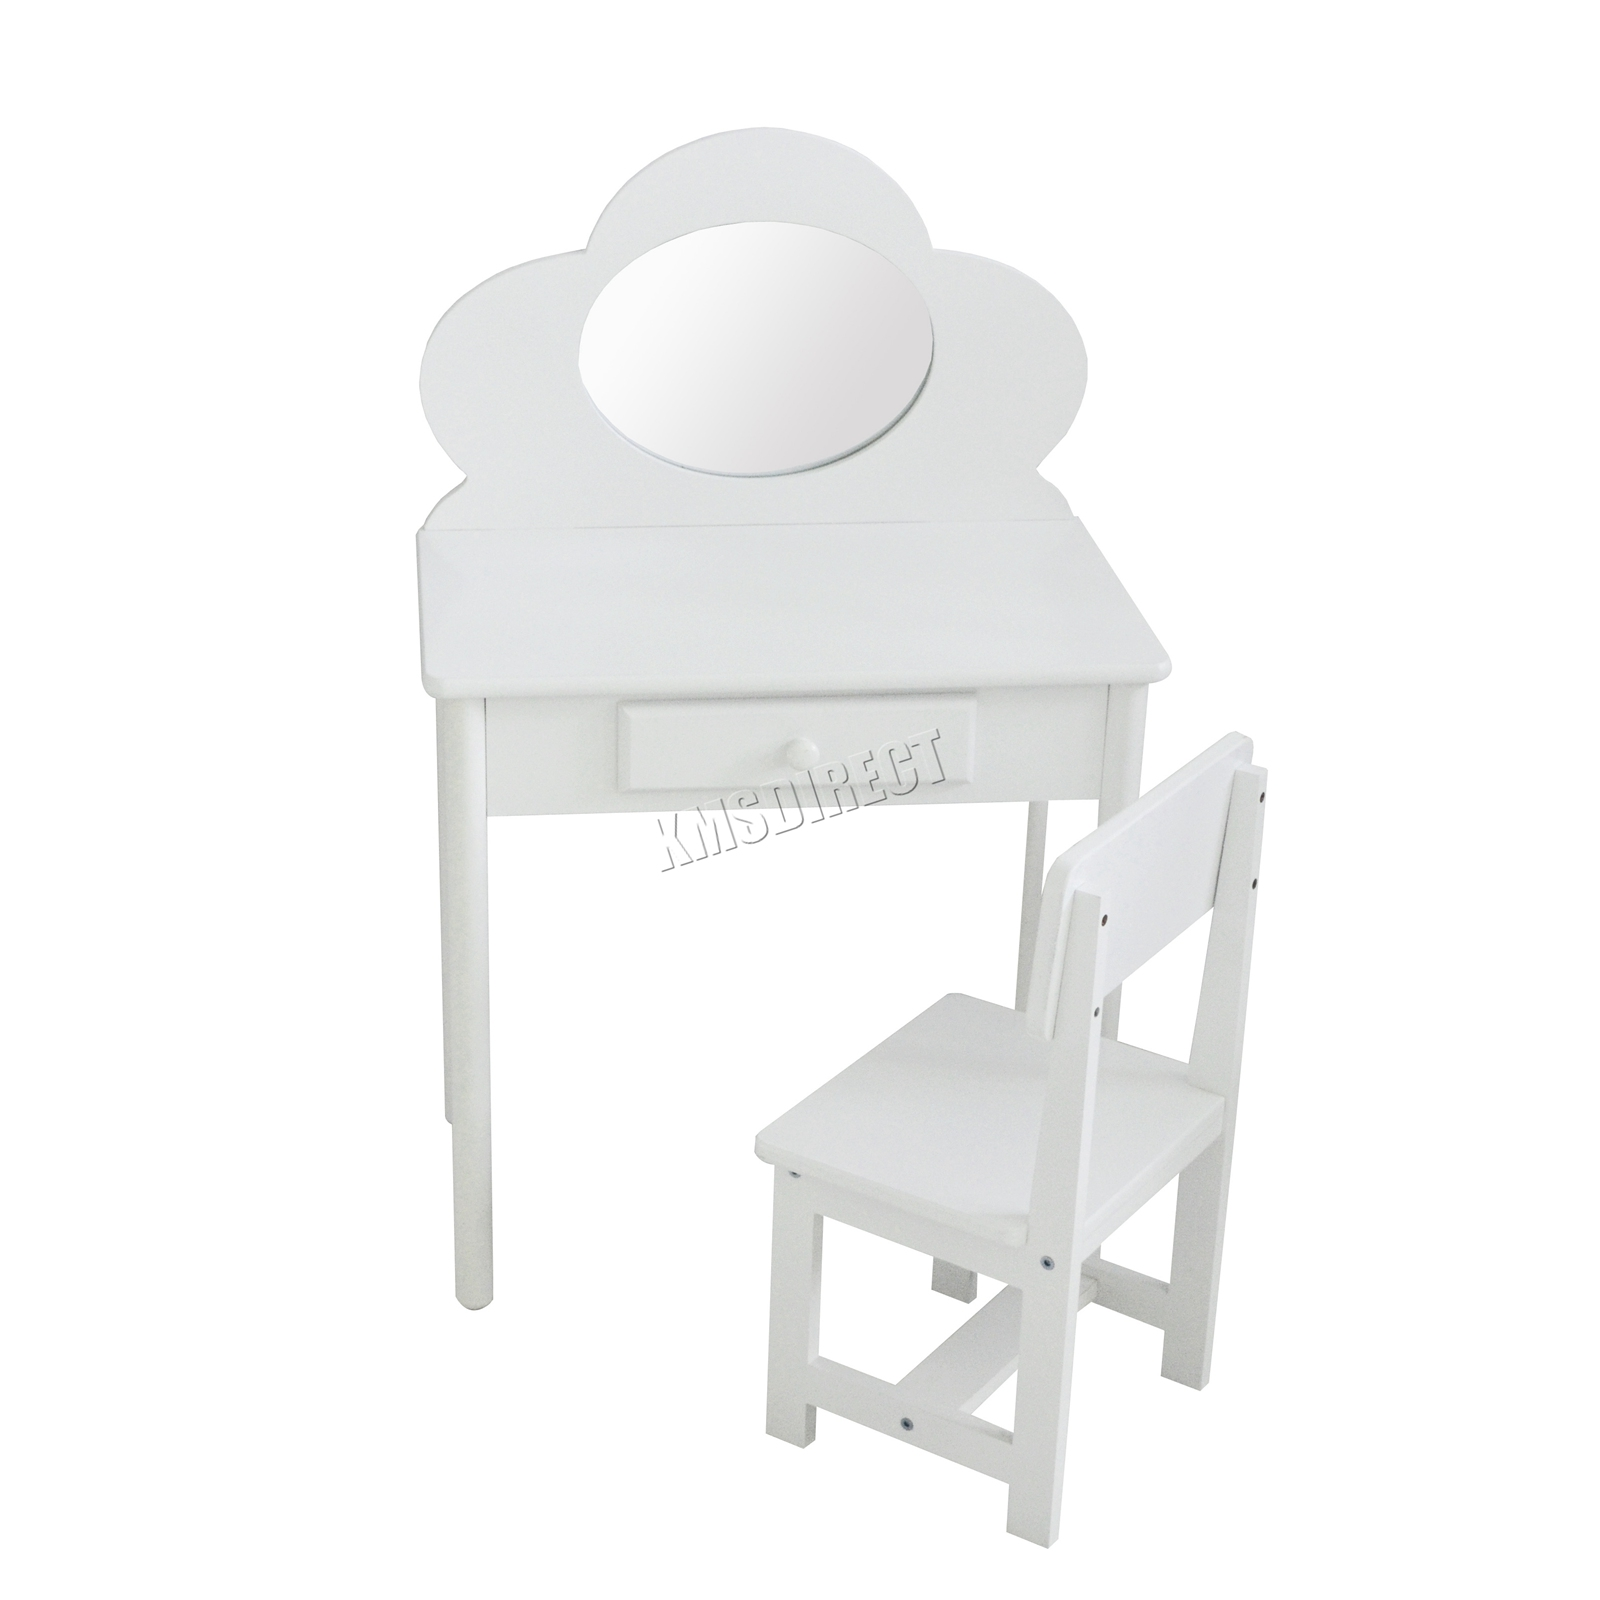 online store 9a4fc fde9d Details about FoxHunter Children's Dressing Table With Mirror – Girls Kids  Makeup Table Chair